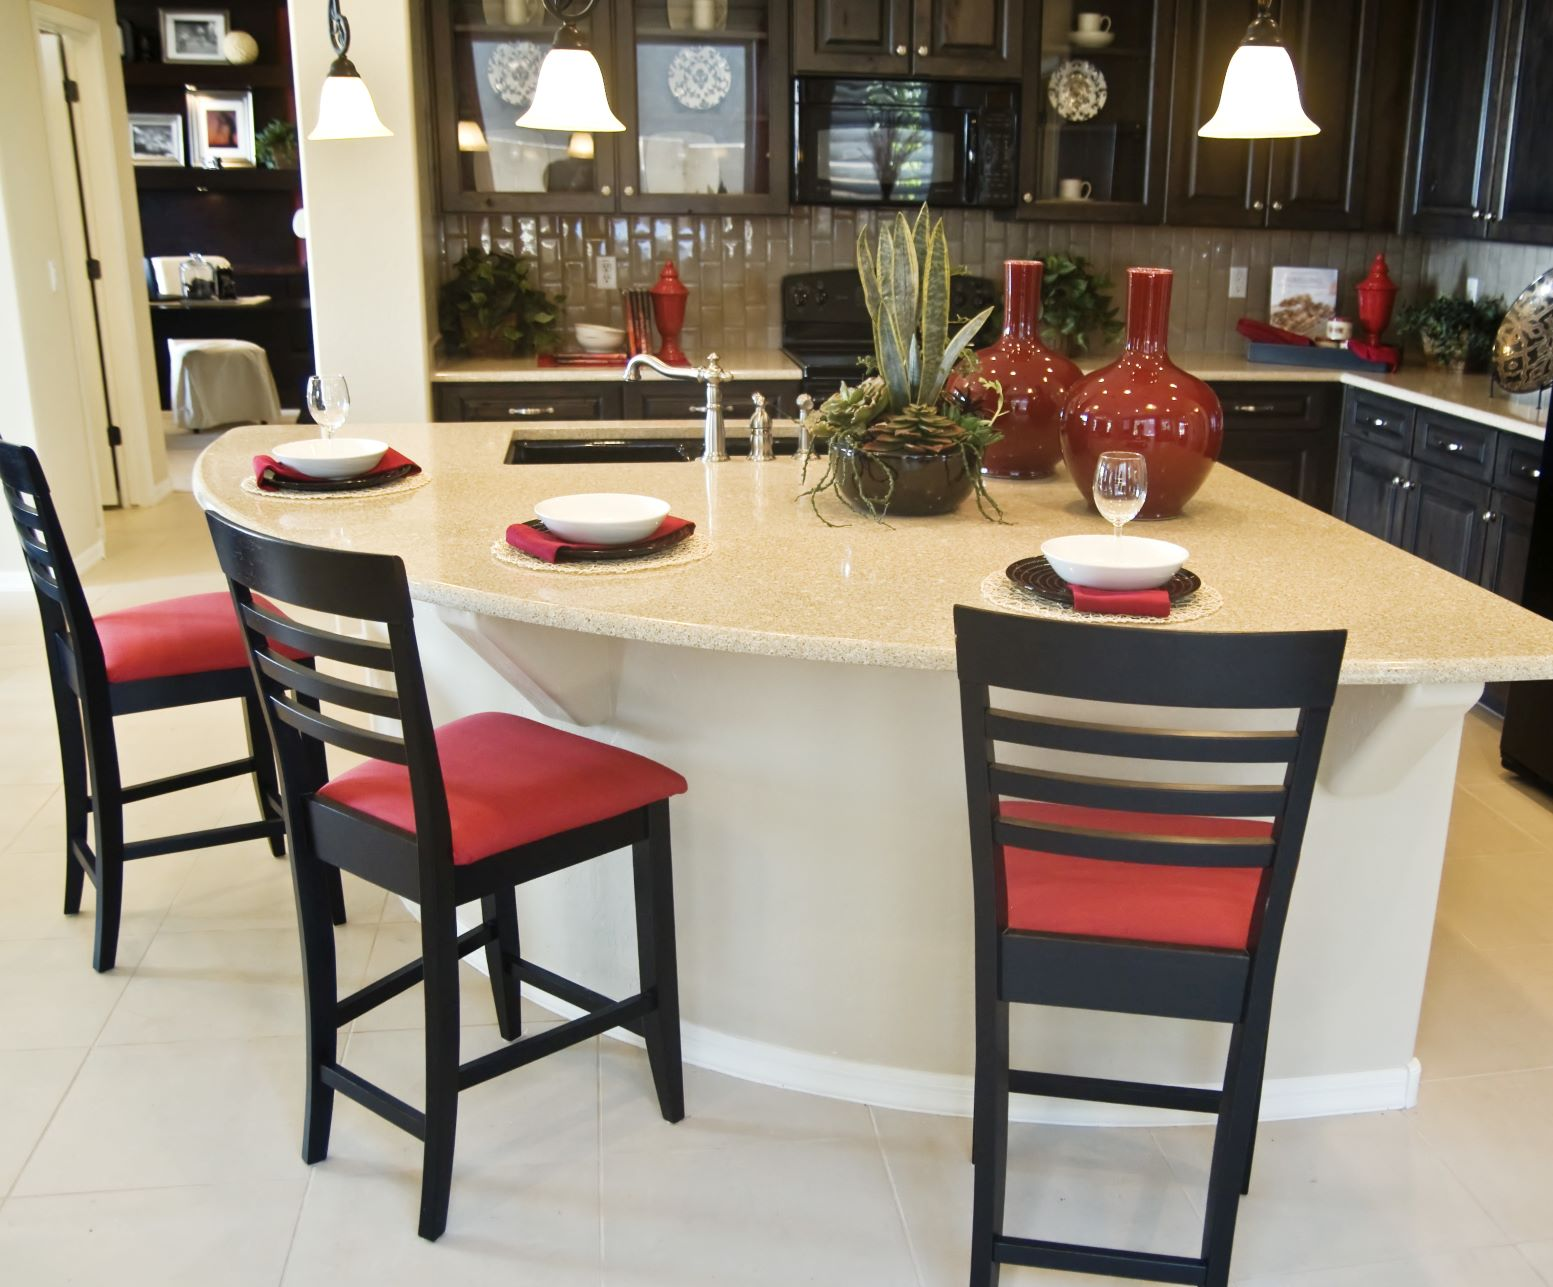 Including a kitchen island with bar stools may help you create an amazing kitchen remodel.